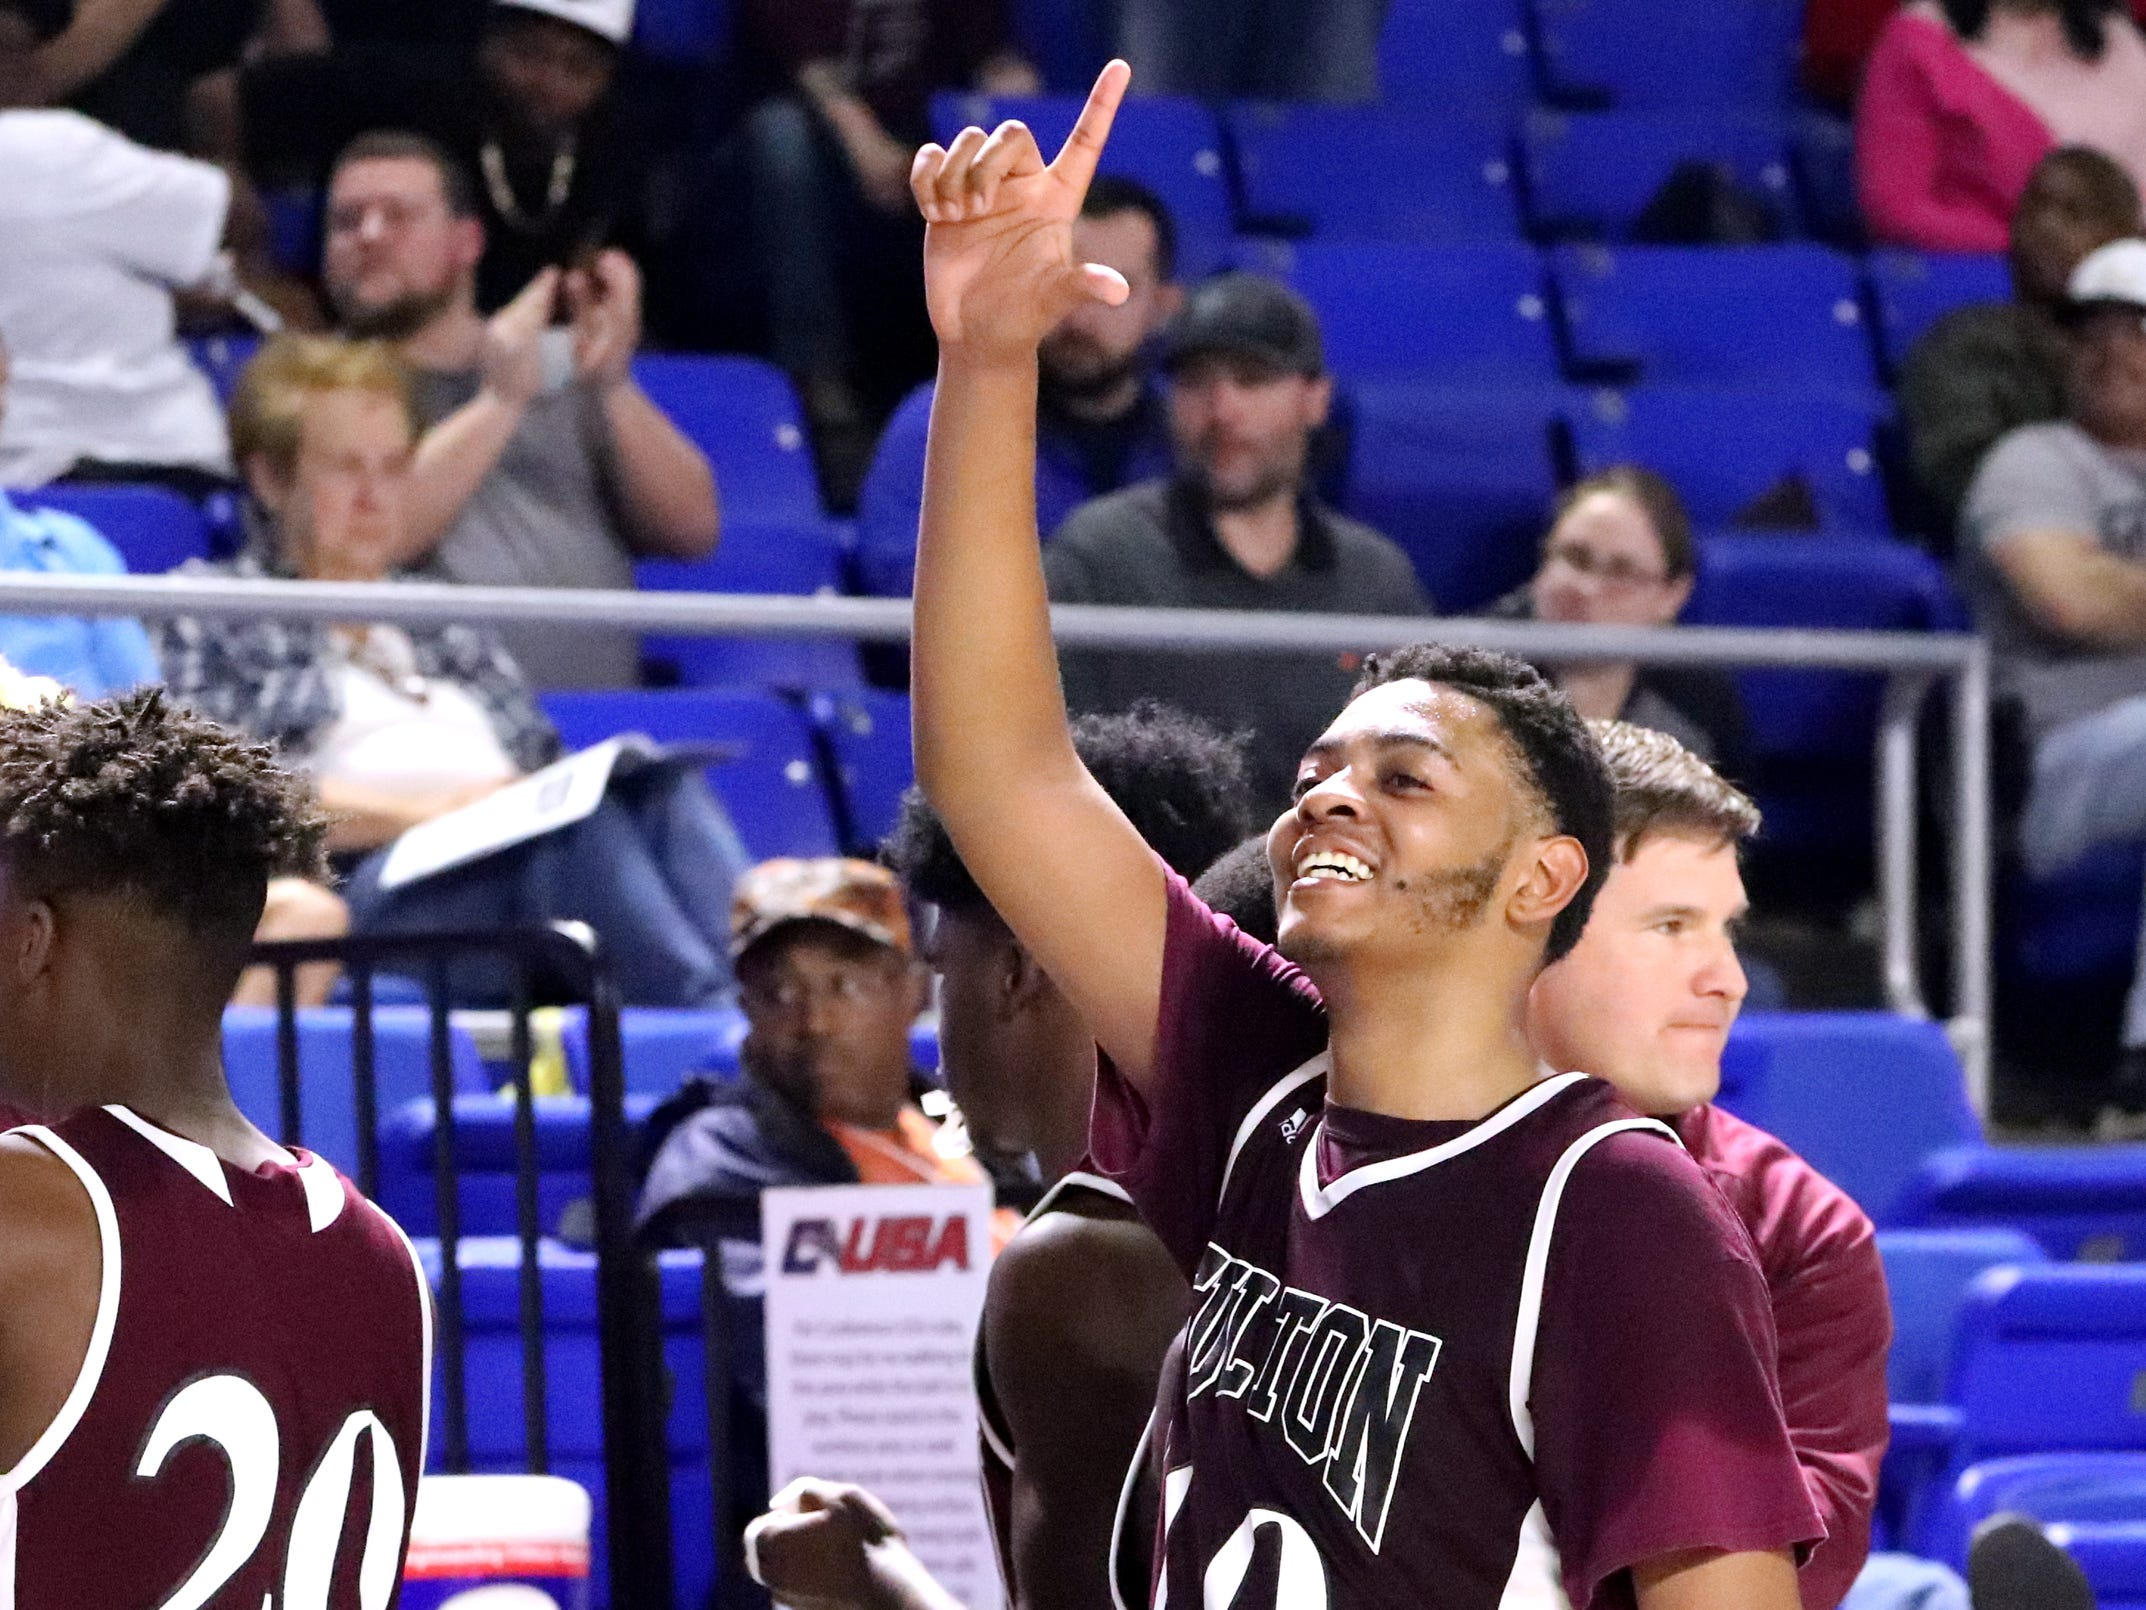 Fulton's Trey West (10) celebrates after beating Mitchell in over time in the quarterfinal round of the TSSAA Class AA Boys State Tournament, on Wednesday, March 13, 2019, at Murphy Center in Murfreesboro, Tenn.